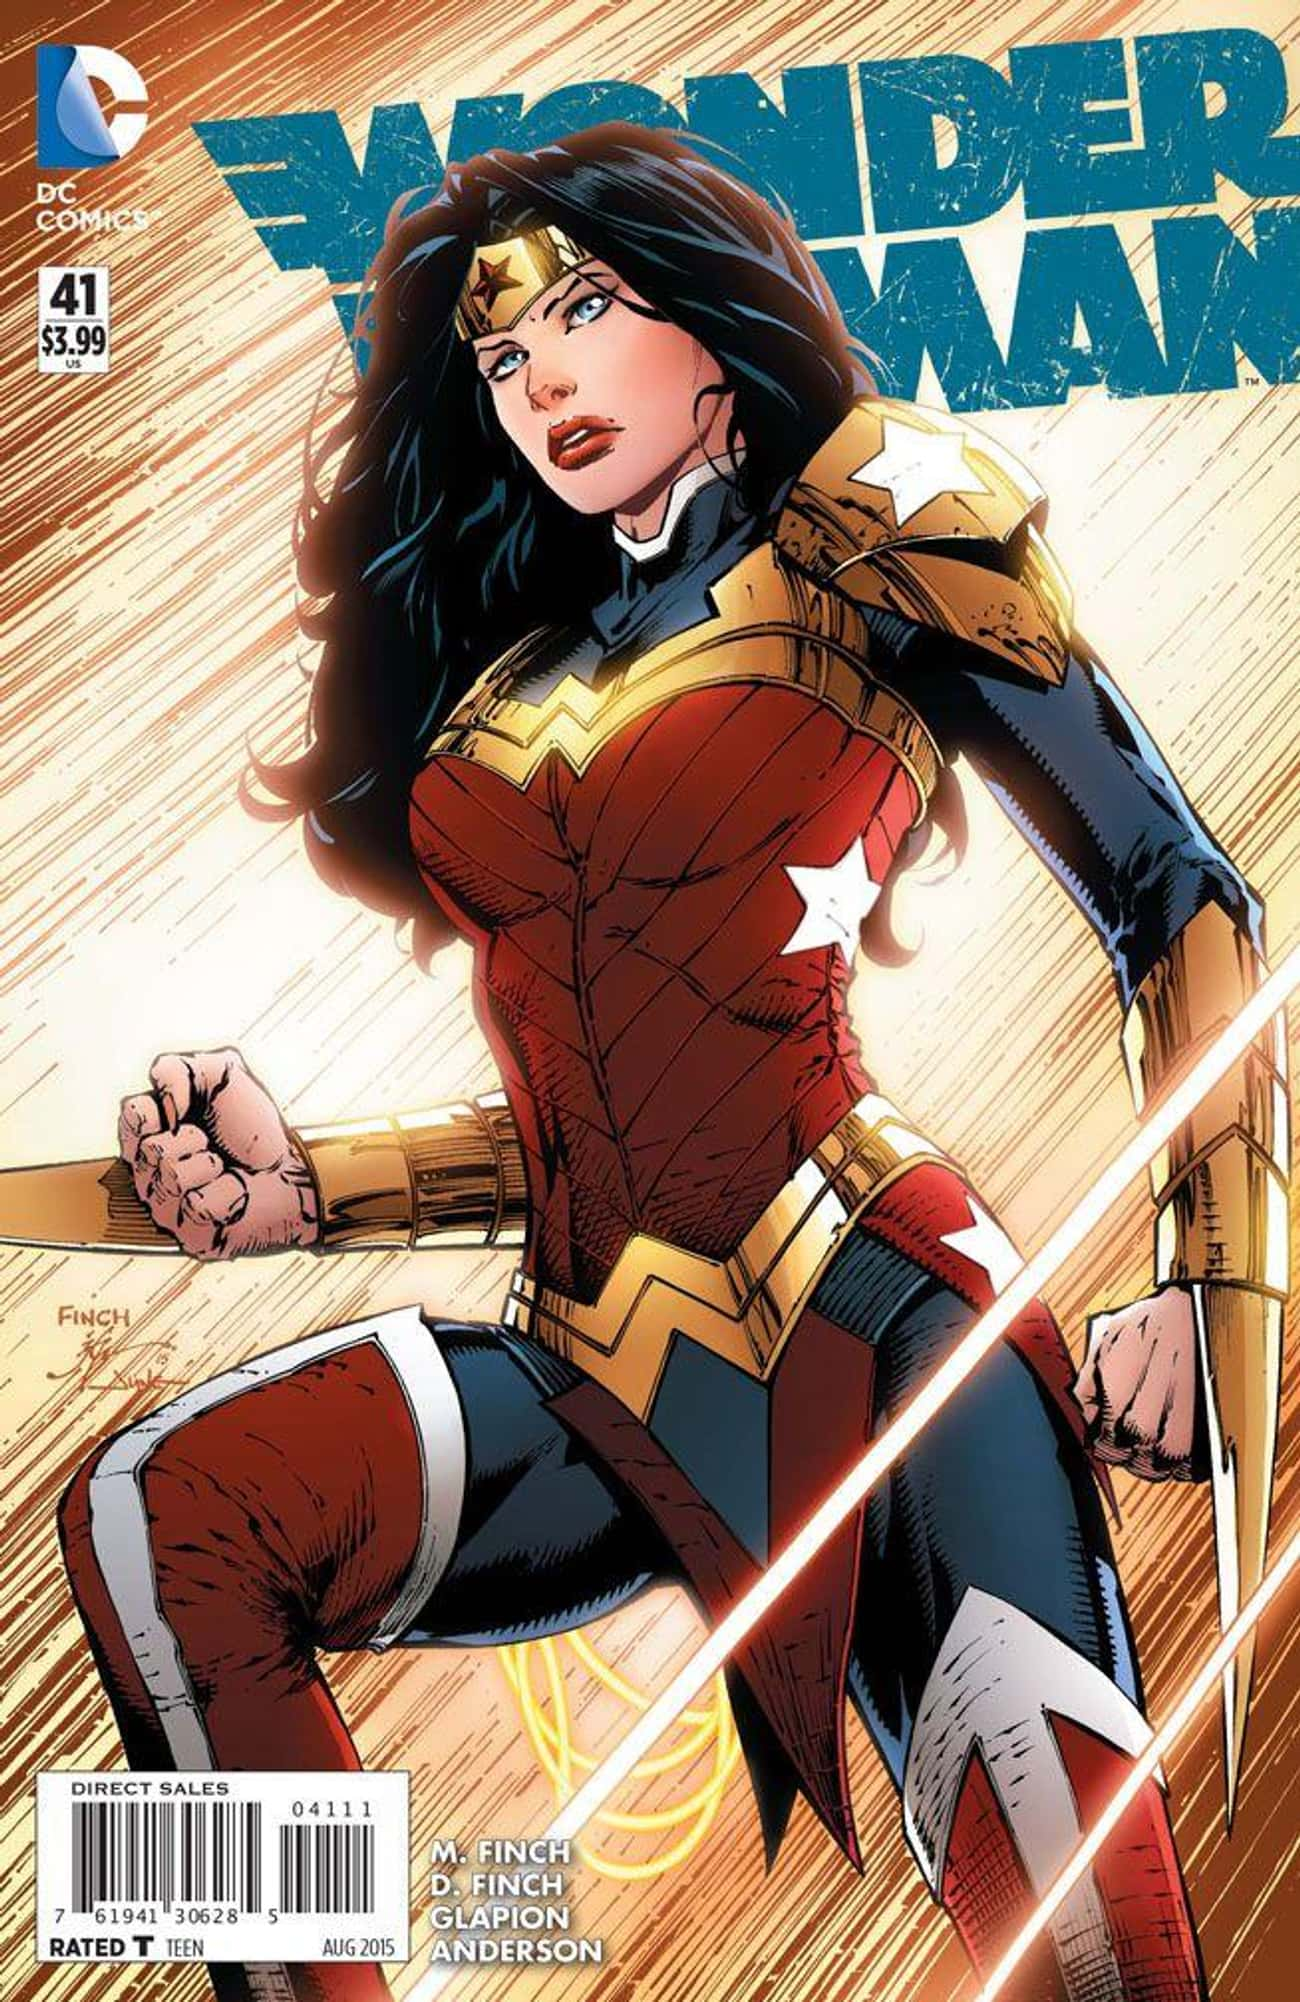 David Finch And Jim Lee's  is listed (or ranked) 1 on the list Wonder Woman's Costumes From The Comics, Ranked By Practicality